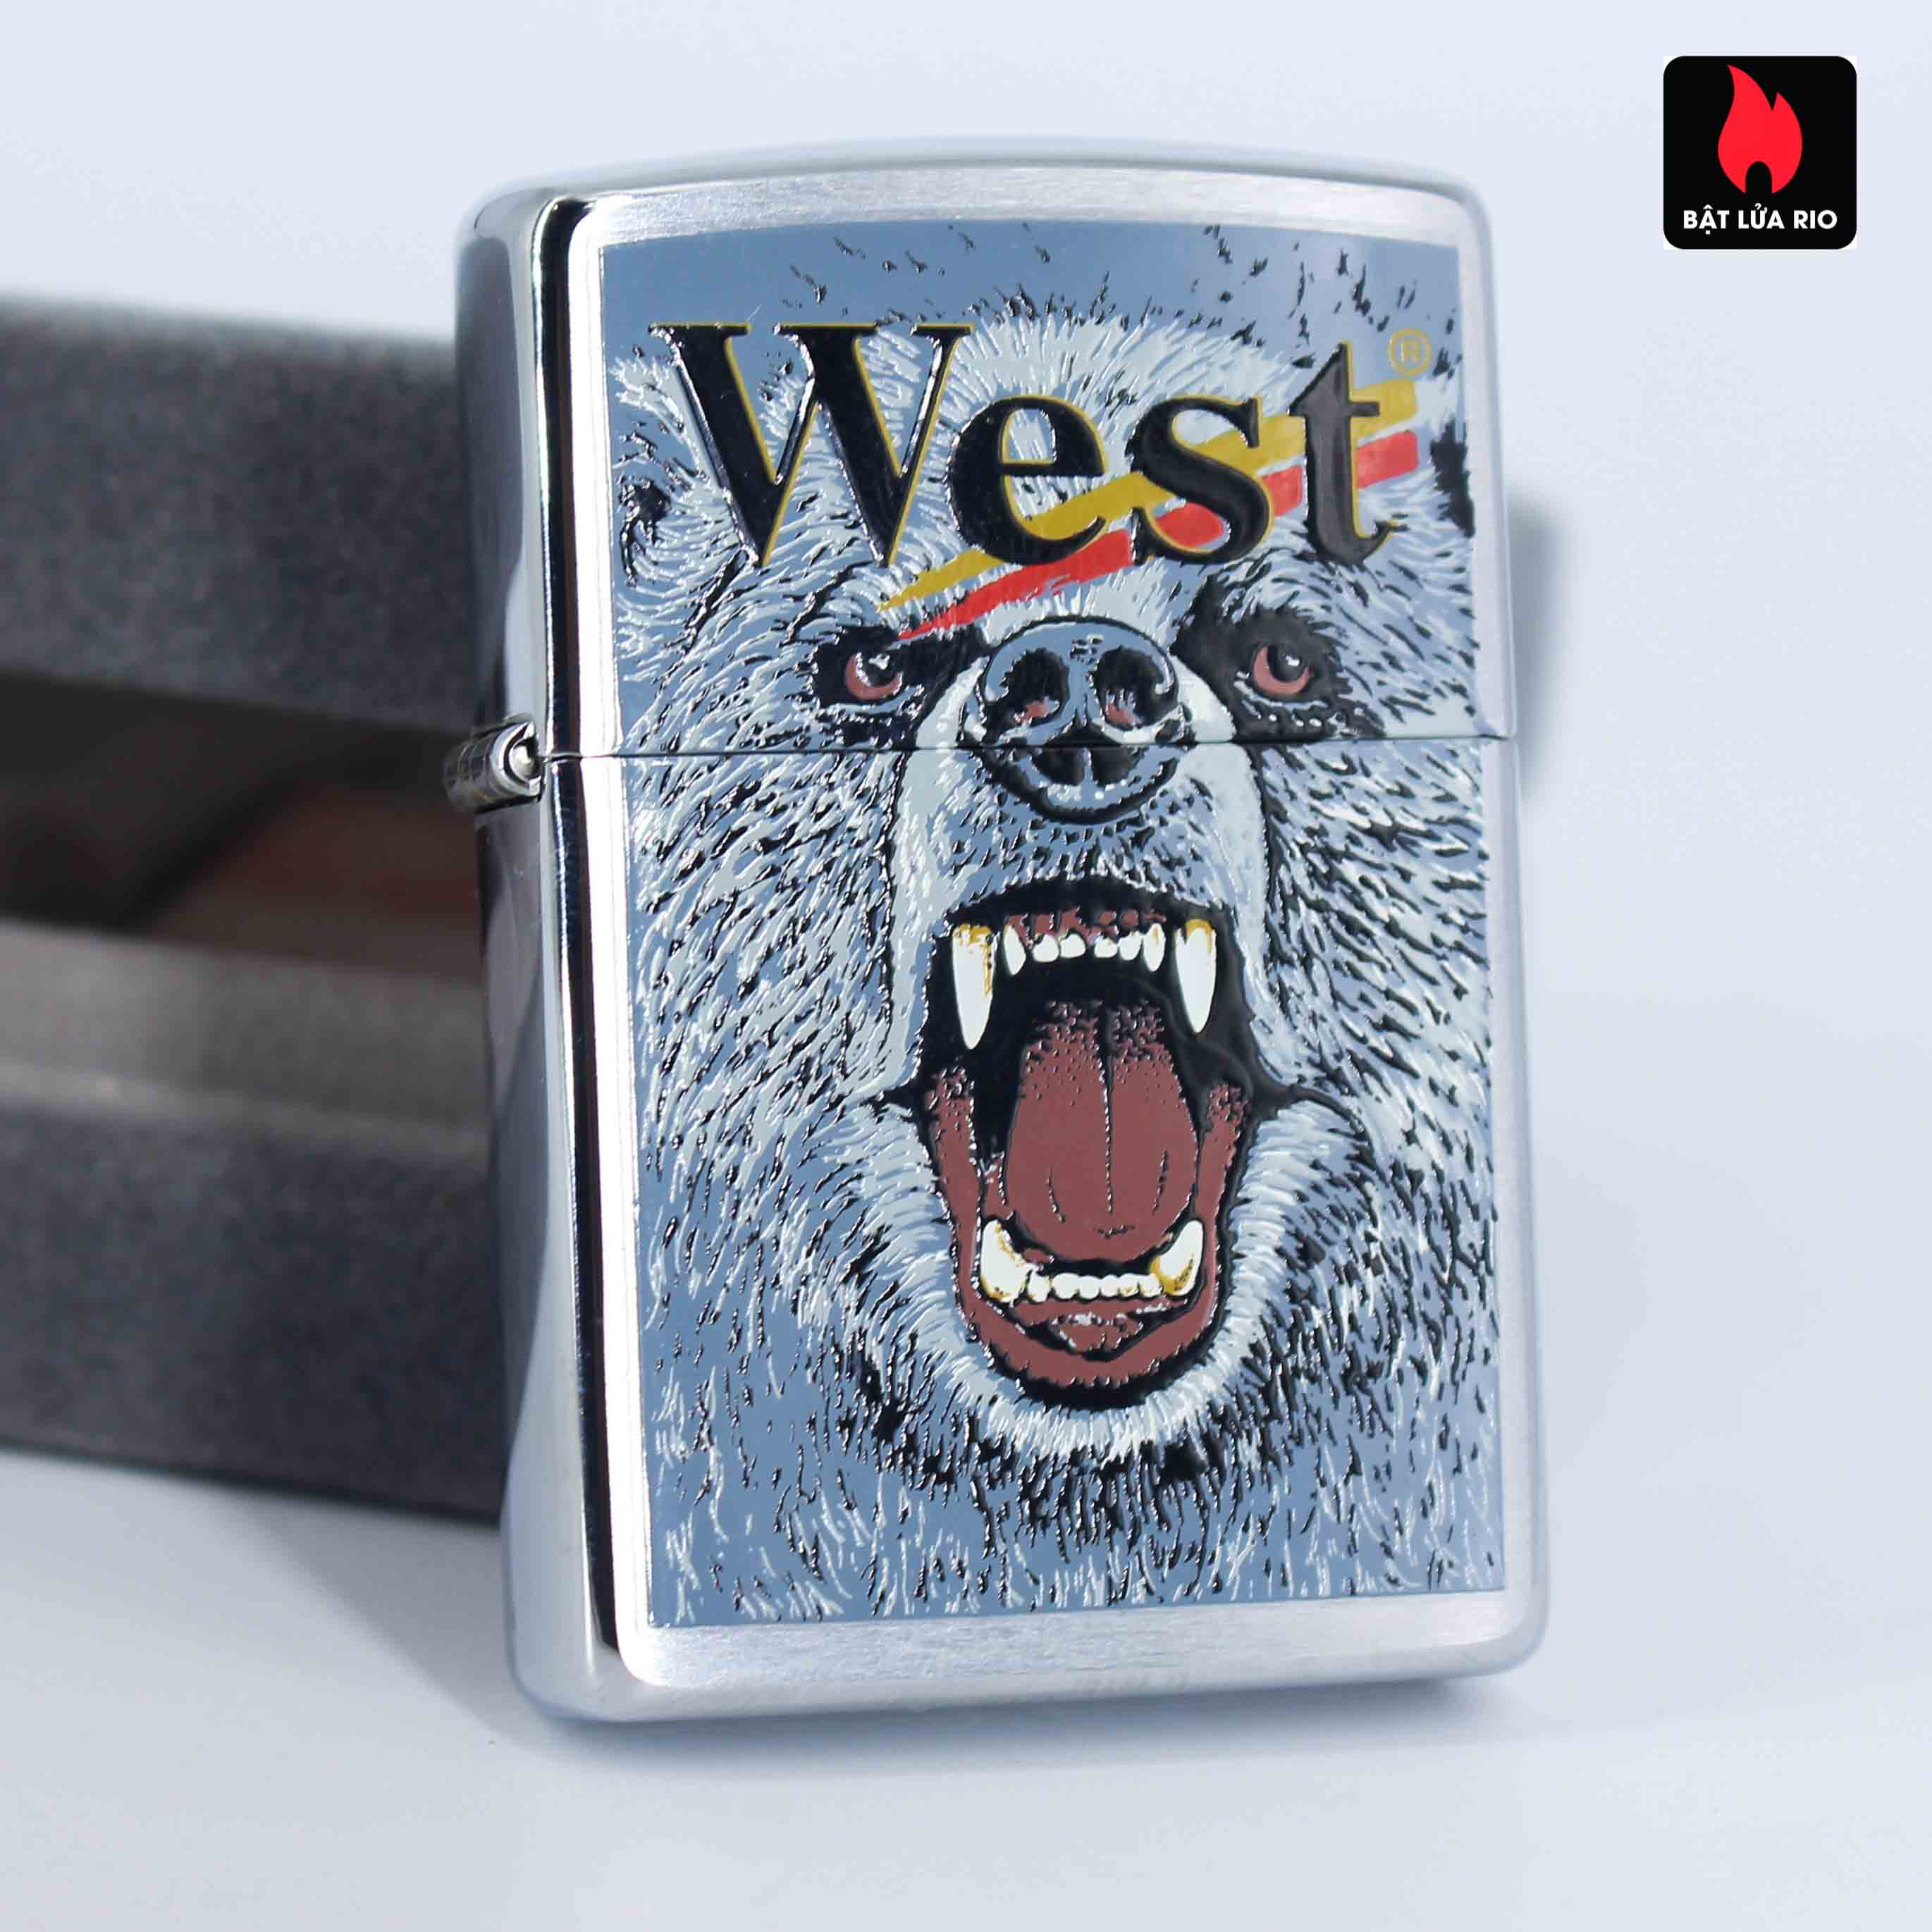 Zippo 2001 - Wild Lighters Edition - Limited Edition /1000 18